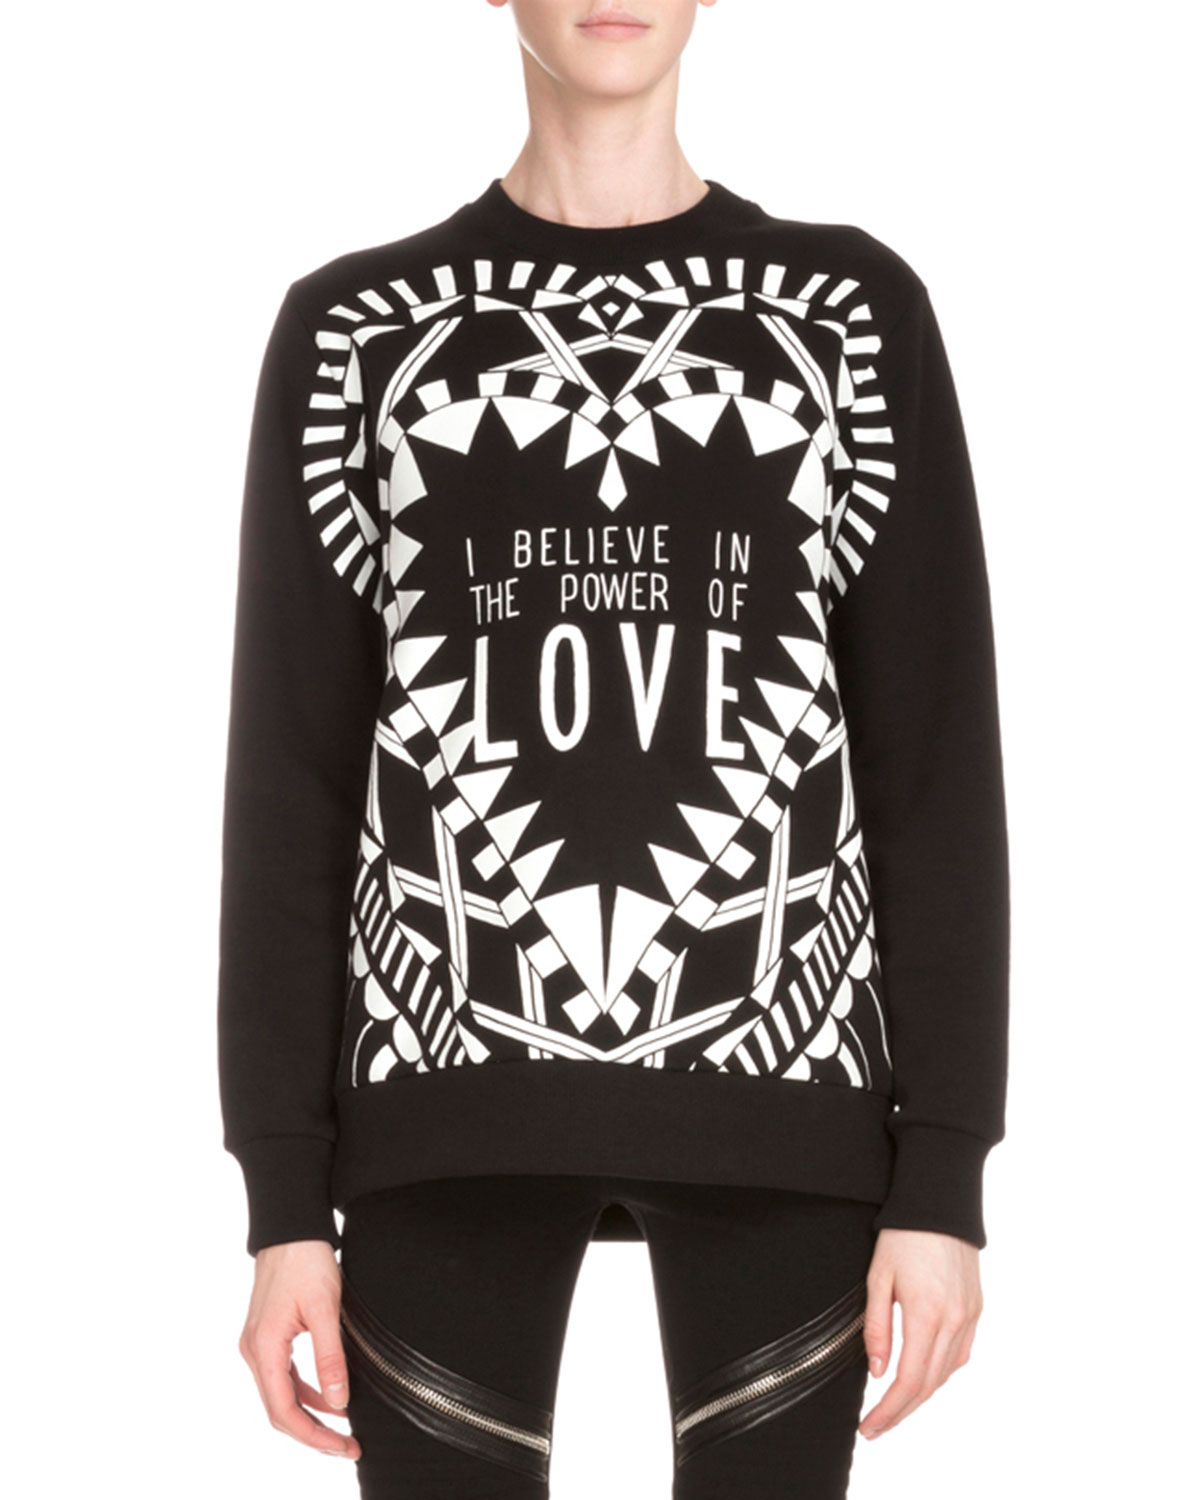 96a74514a5bc Givenchy Power of Love Long-Sleeve Graphic Sweatshirt, Black ...